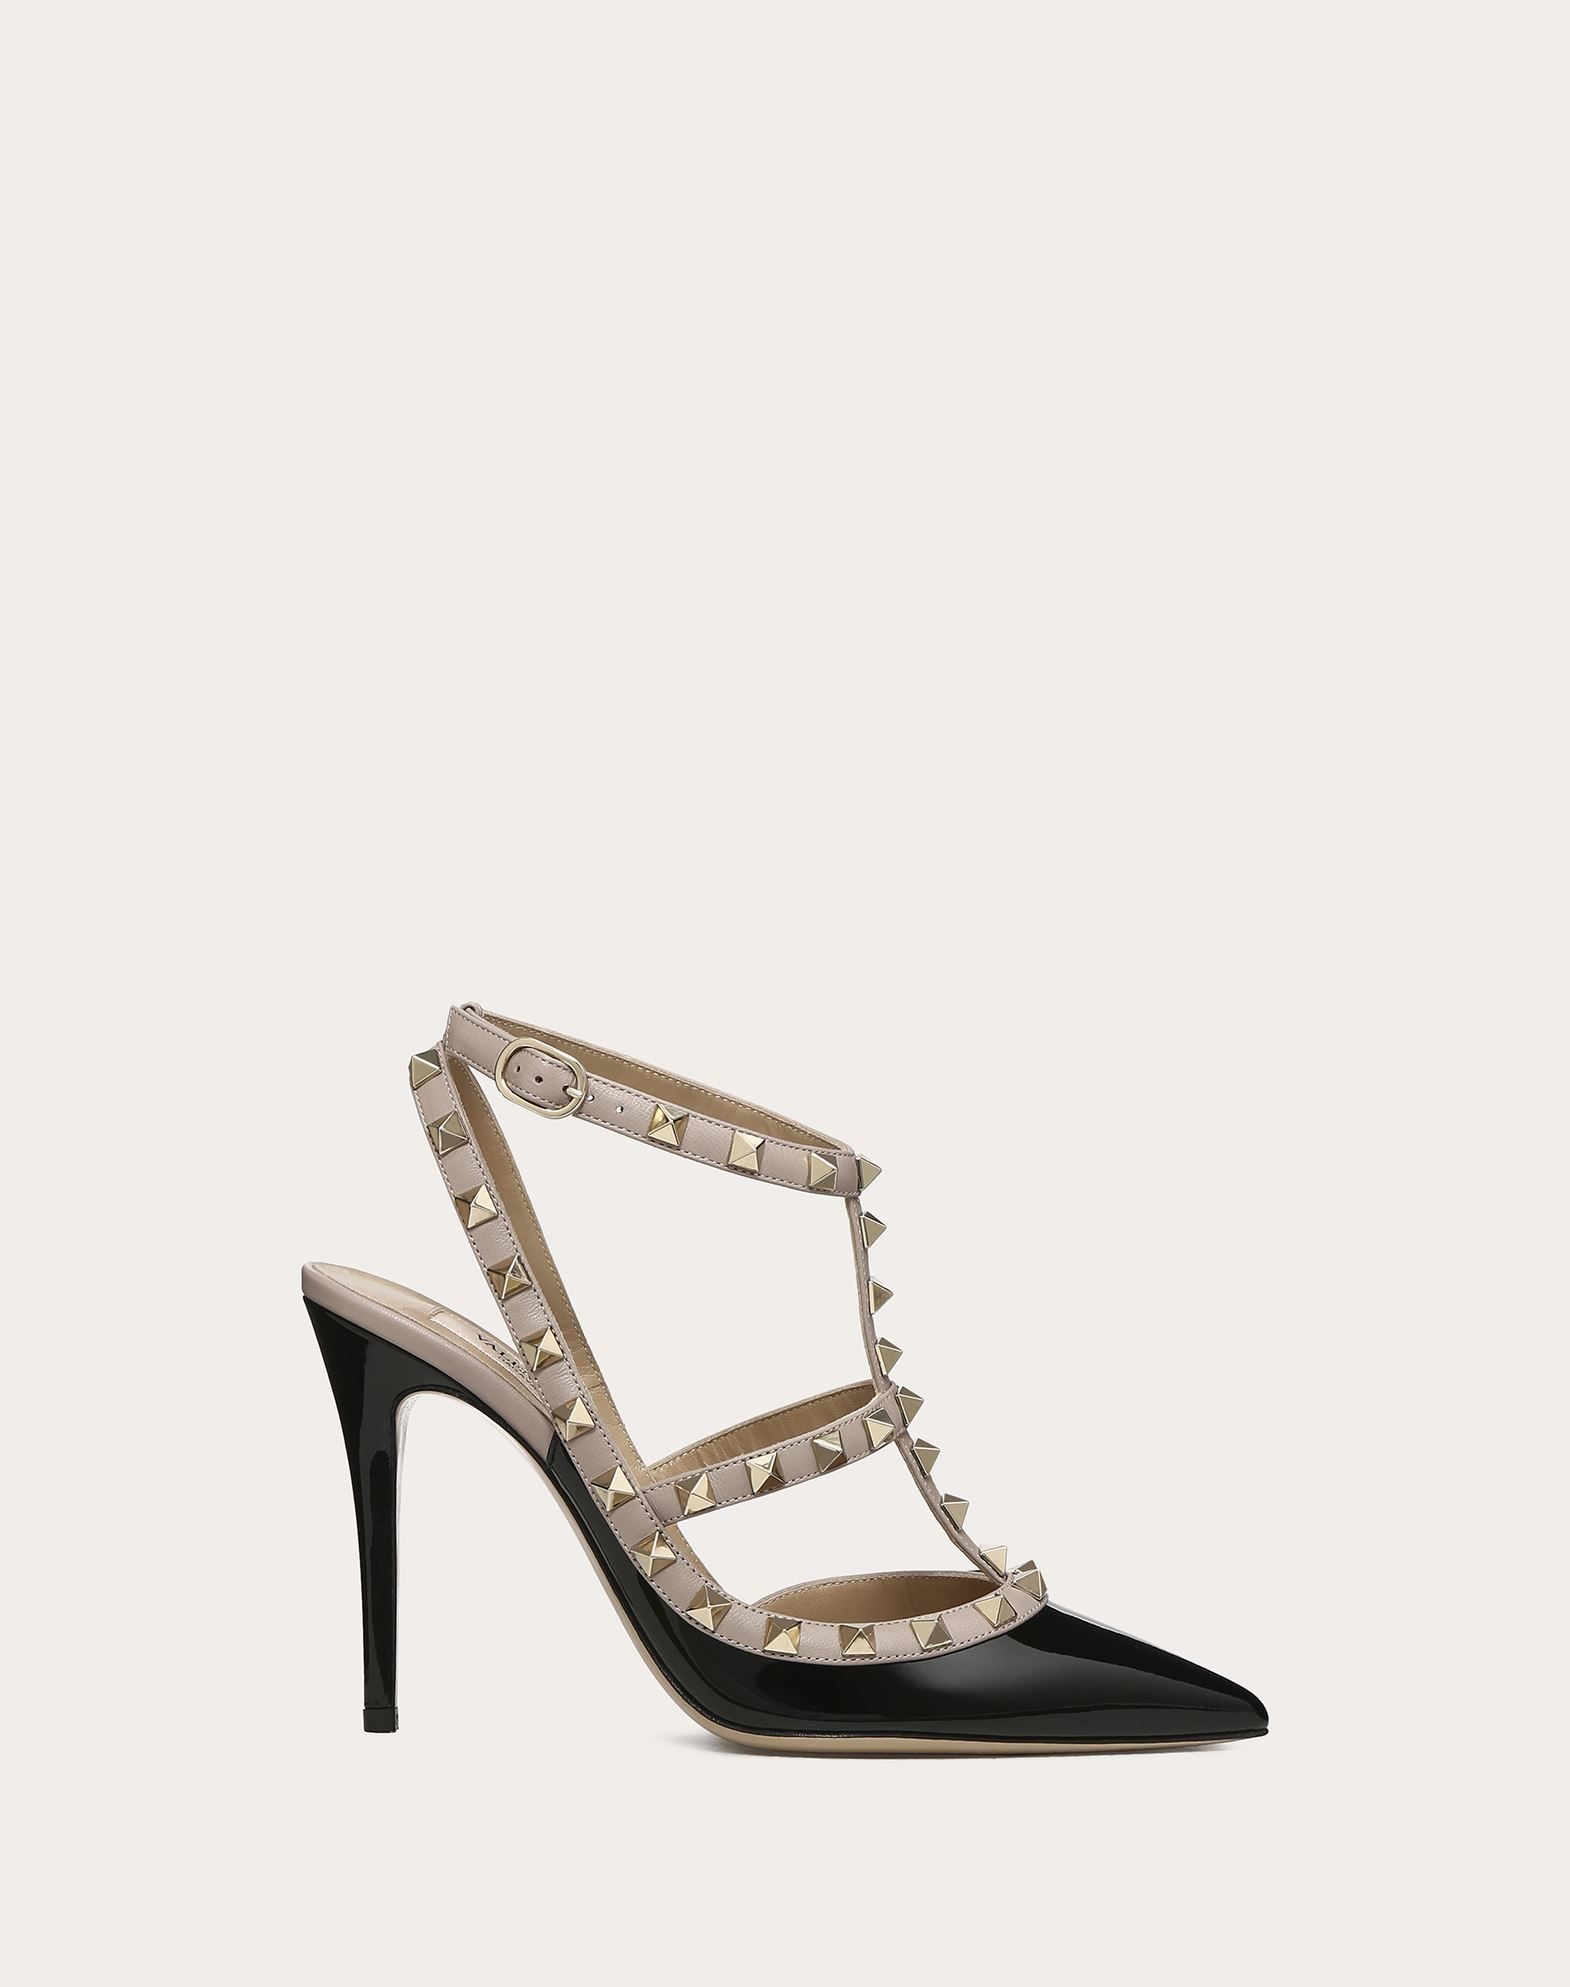 stud off to strap cuir m pumps tradesy regular deep collection on up sale b size rock t s valentino at us slingback rockstud